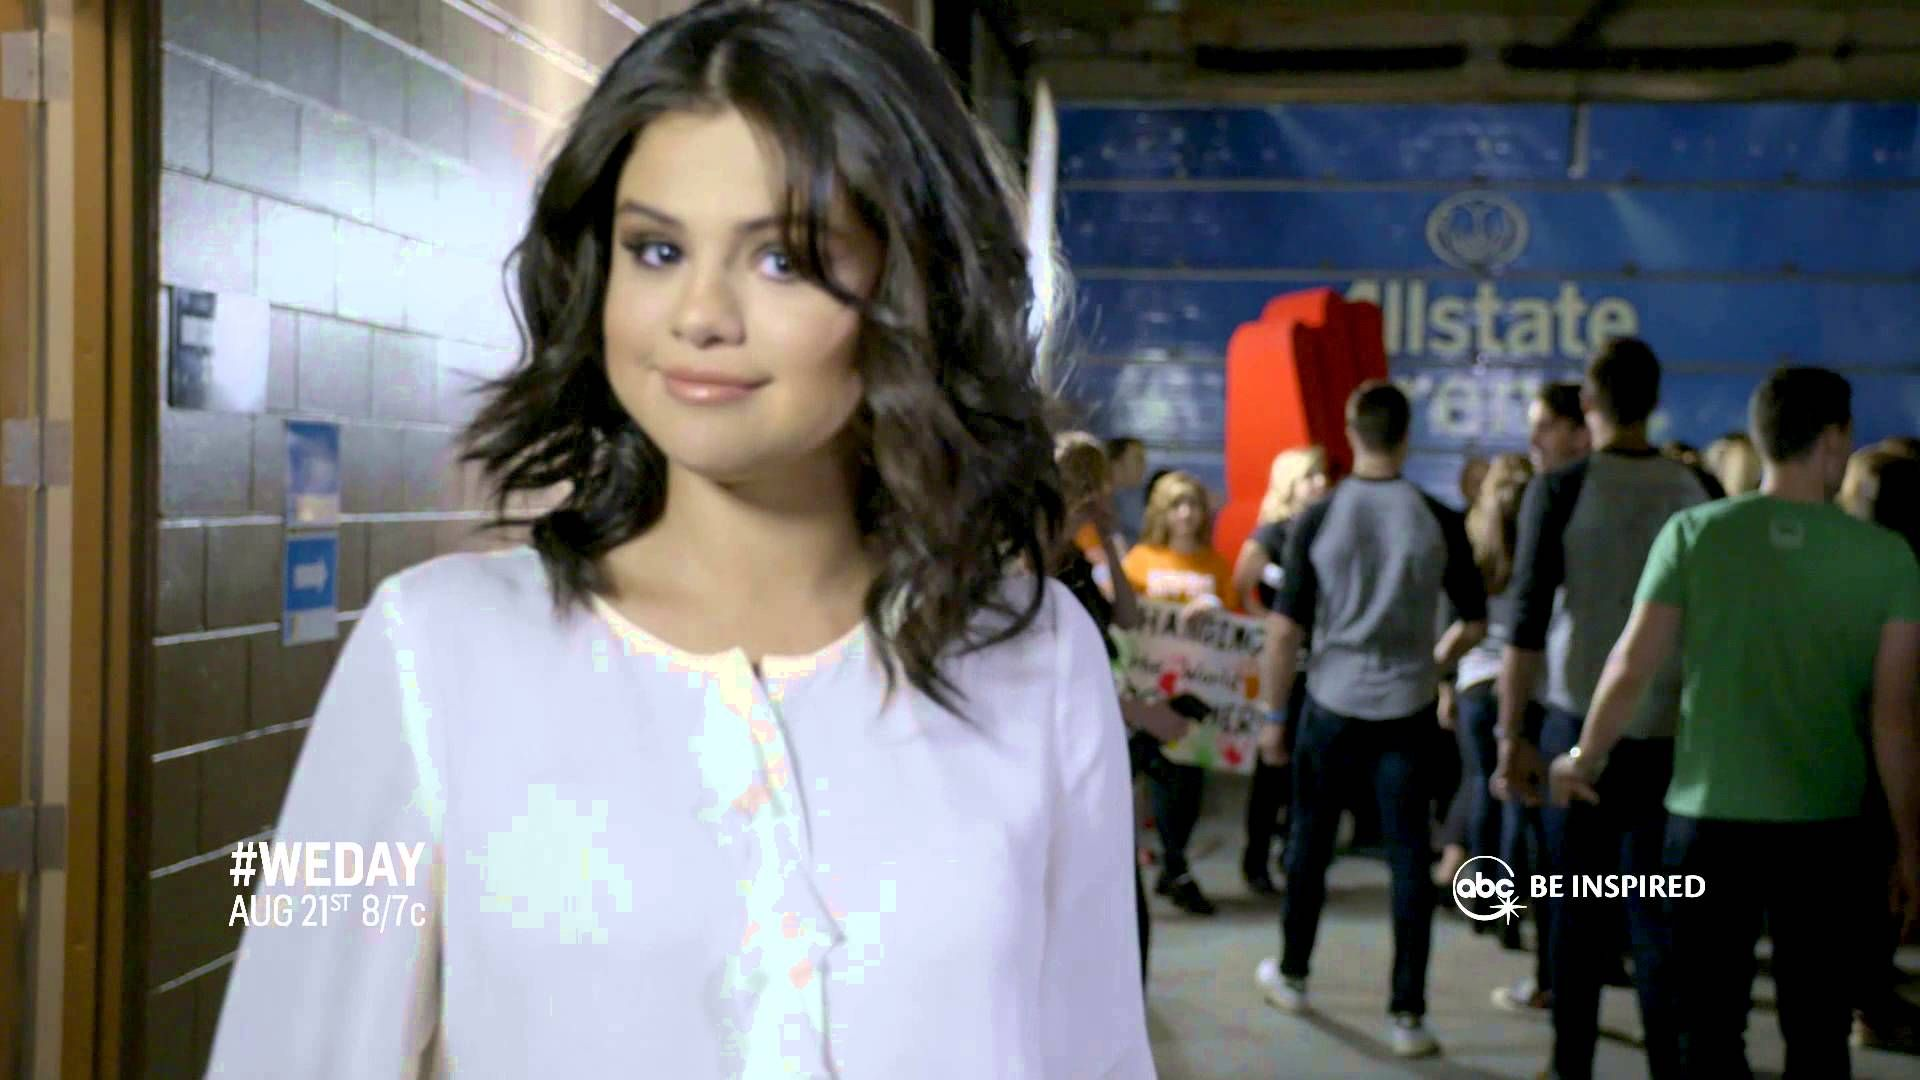 Off The Stage Selena Gomez Mystory Mysong Thestyoryofus -4333